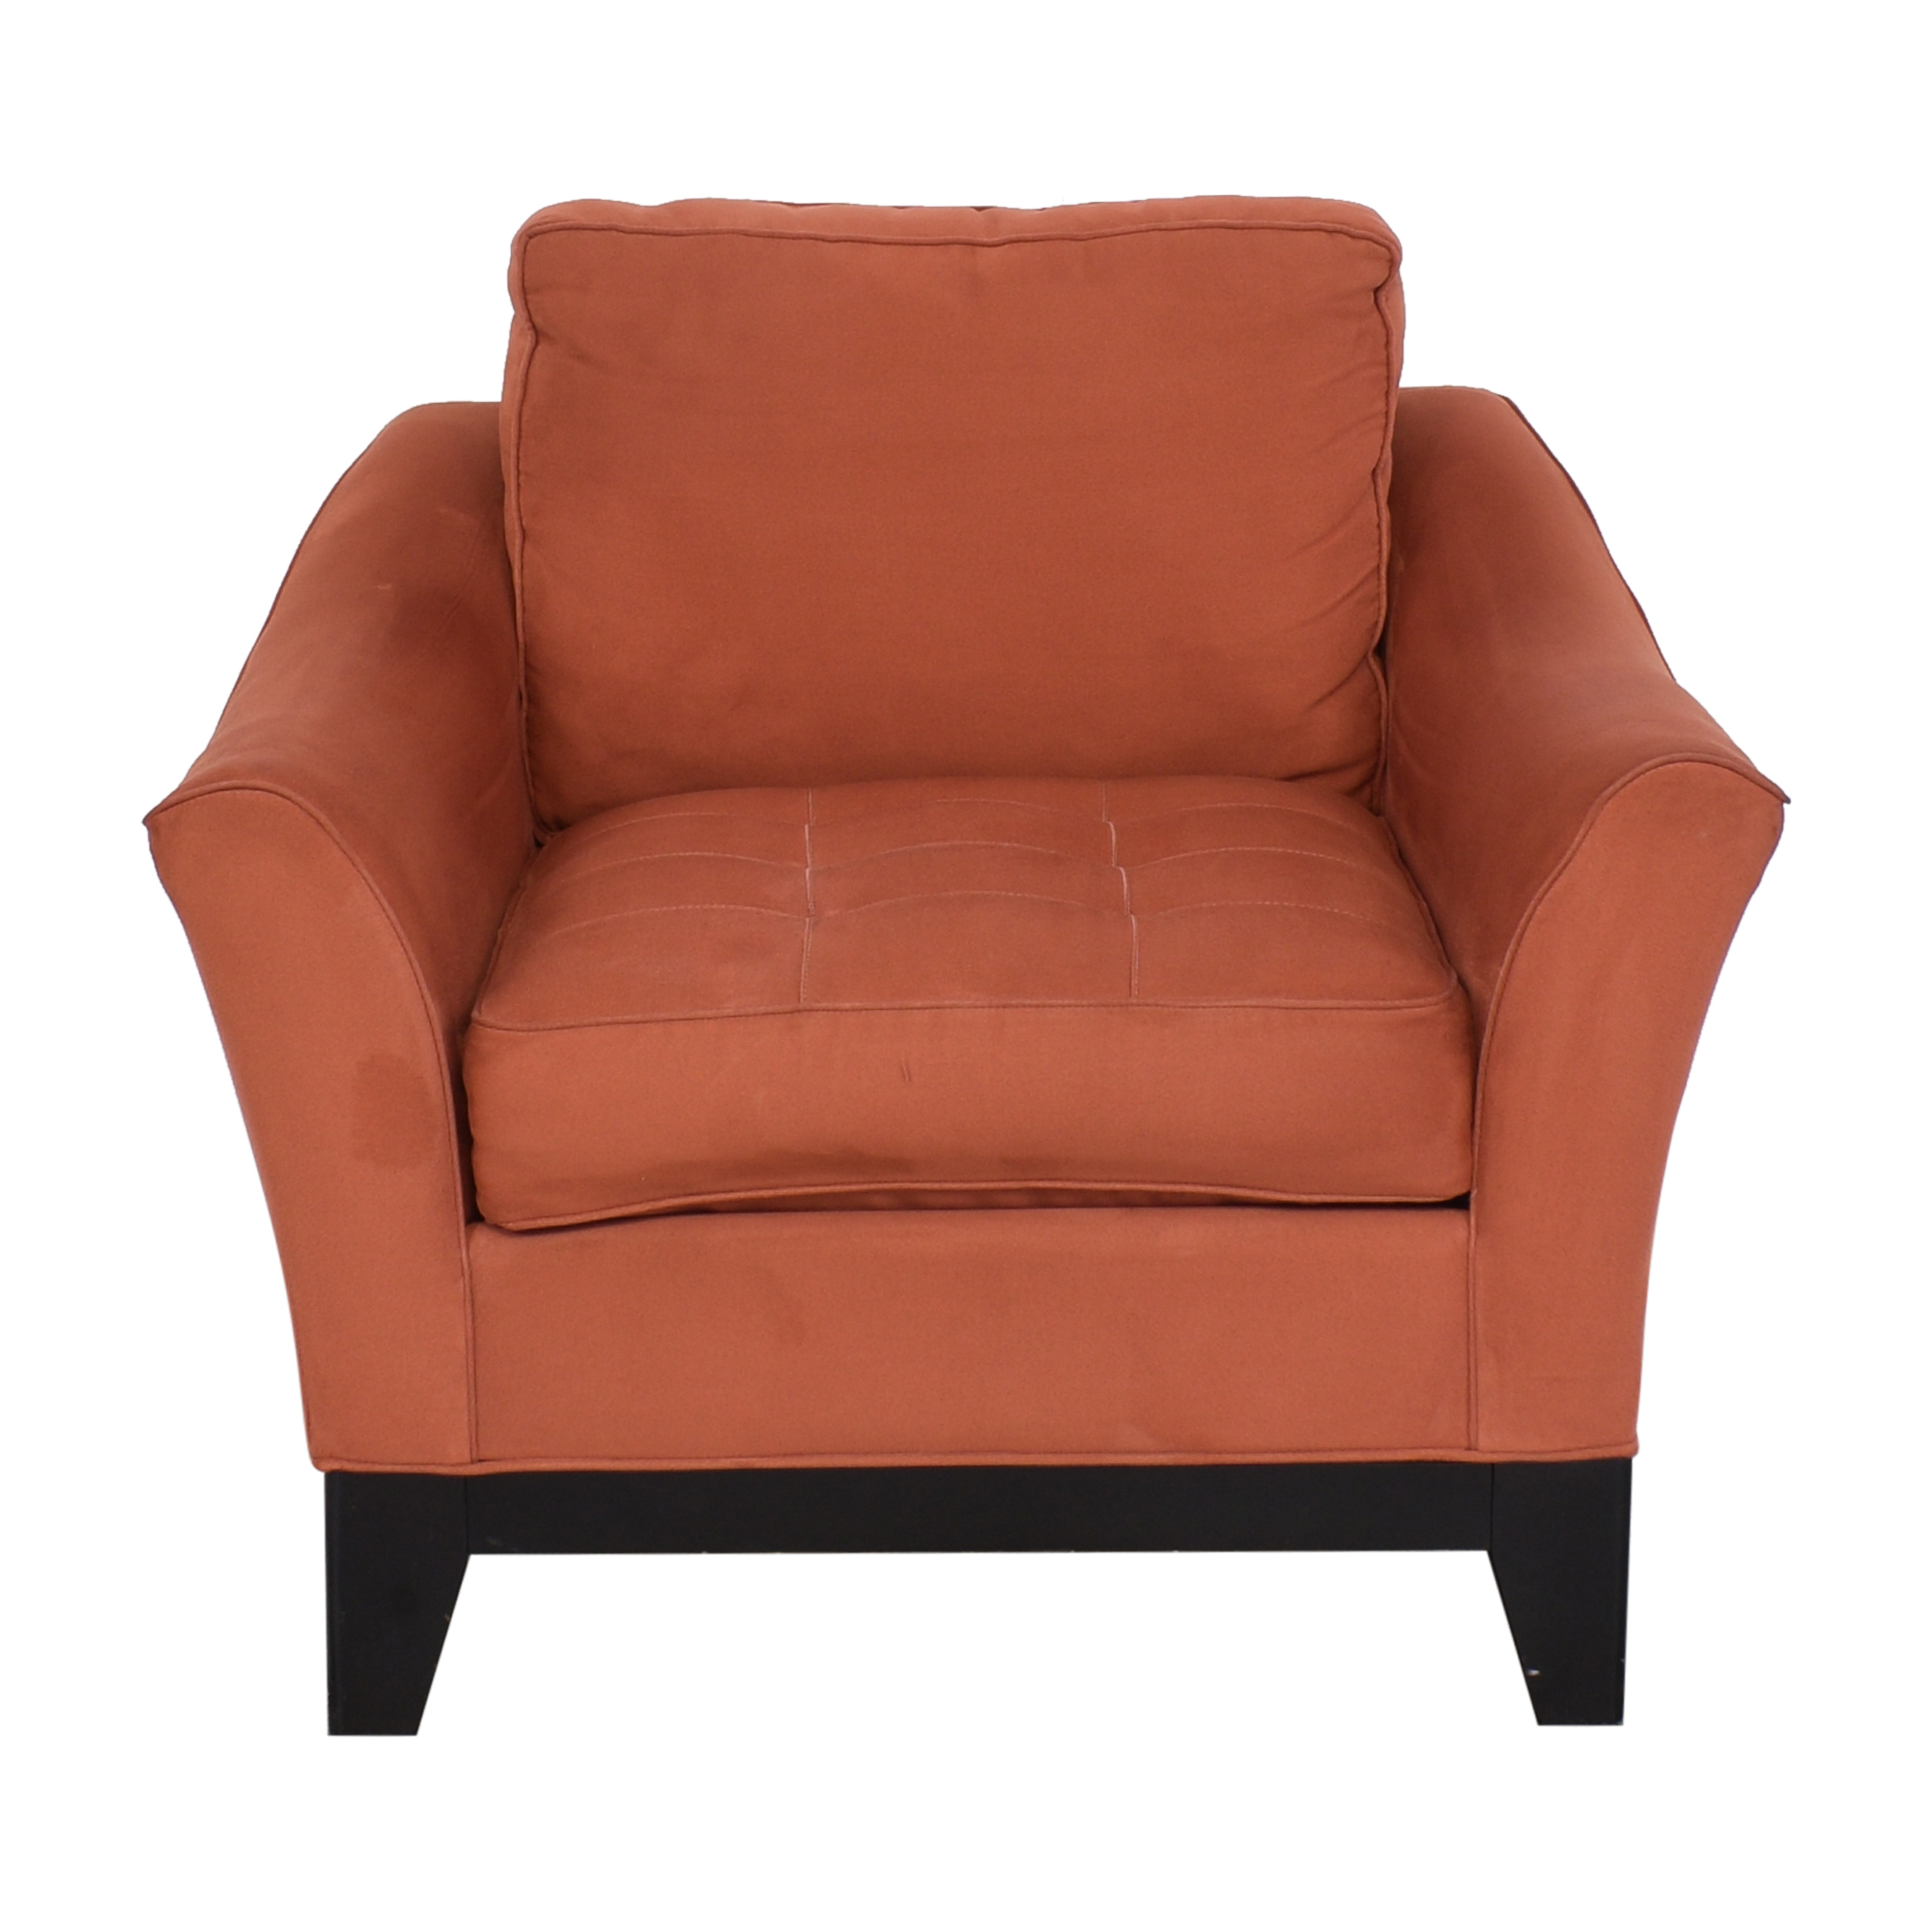 buy Raymour & Flanigan Raymour & Flanigan Rory Chair online